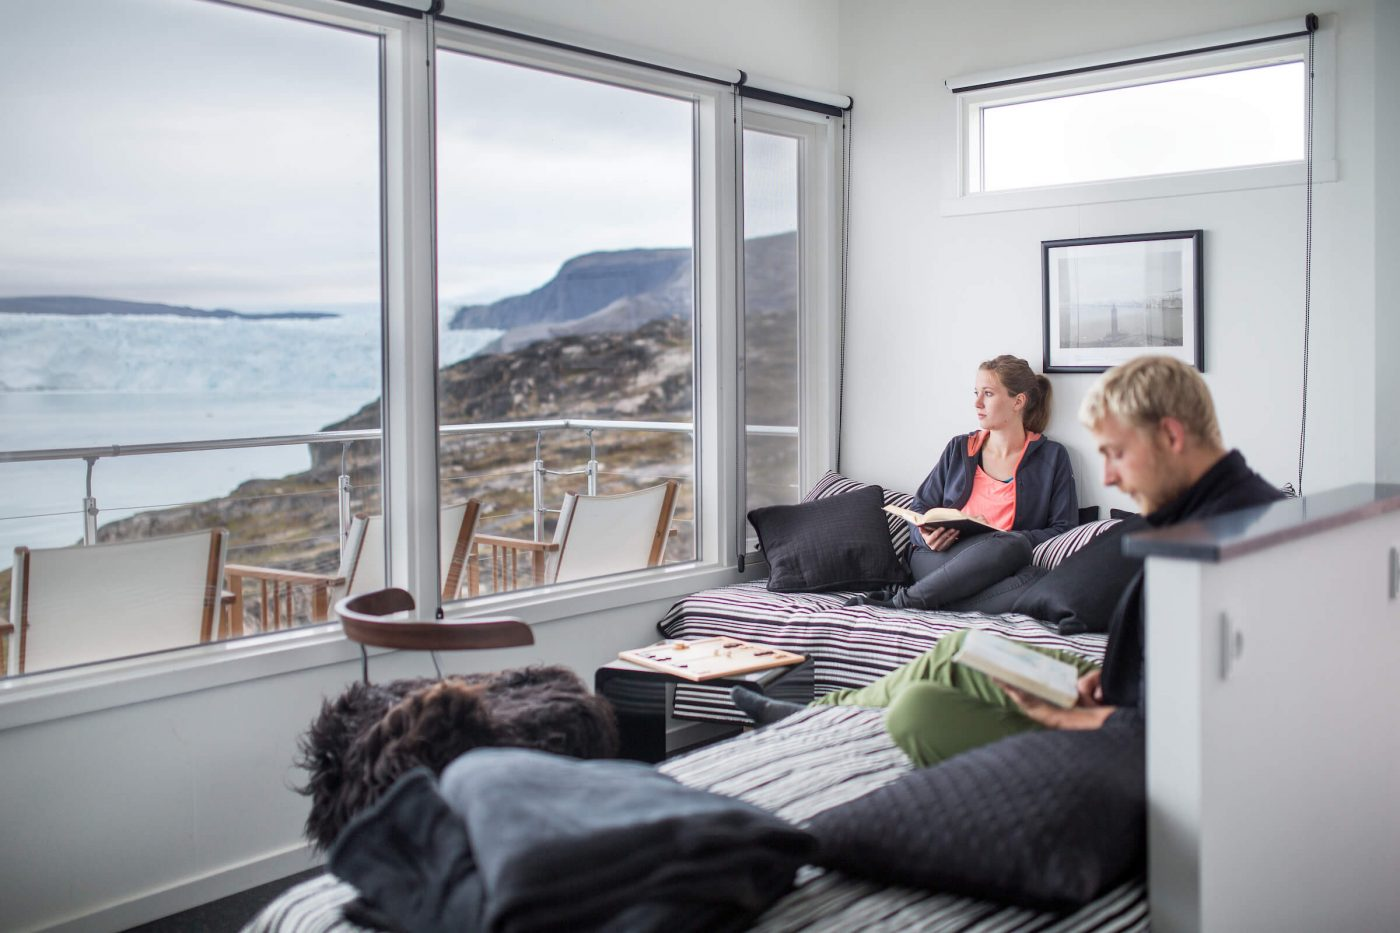 Guests enjoying a quiet moment in one of the Eqi Glacier Lodge comfort huts in Greenland. Photo by Mads Pihl, Visit Greenland. Photo by Mads Pihl, Visit Greenland